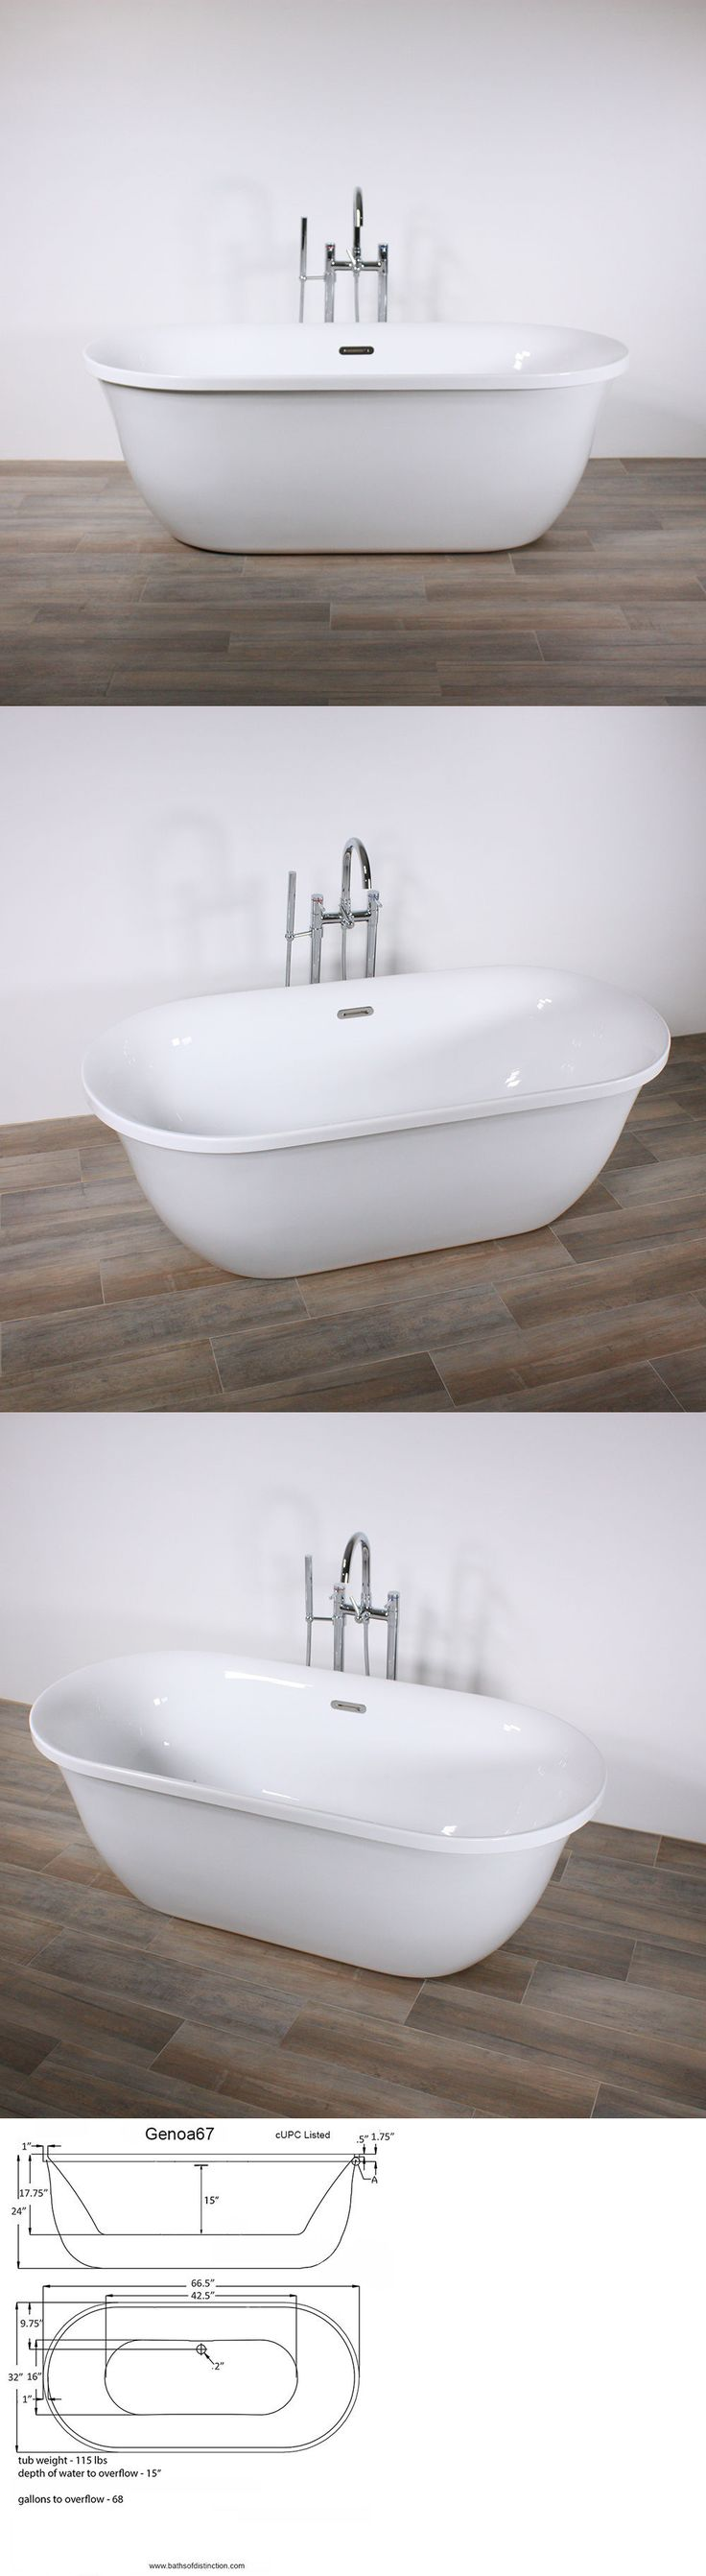 Bathtubs 42025: Freestanding Bathtub Genoa 67 Oval Acrylic Tub With Chrome Drain - No Faucet -> BUY IT NOW ONLY: $685 on eBay!